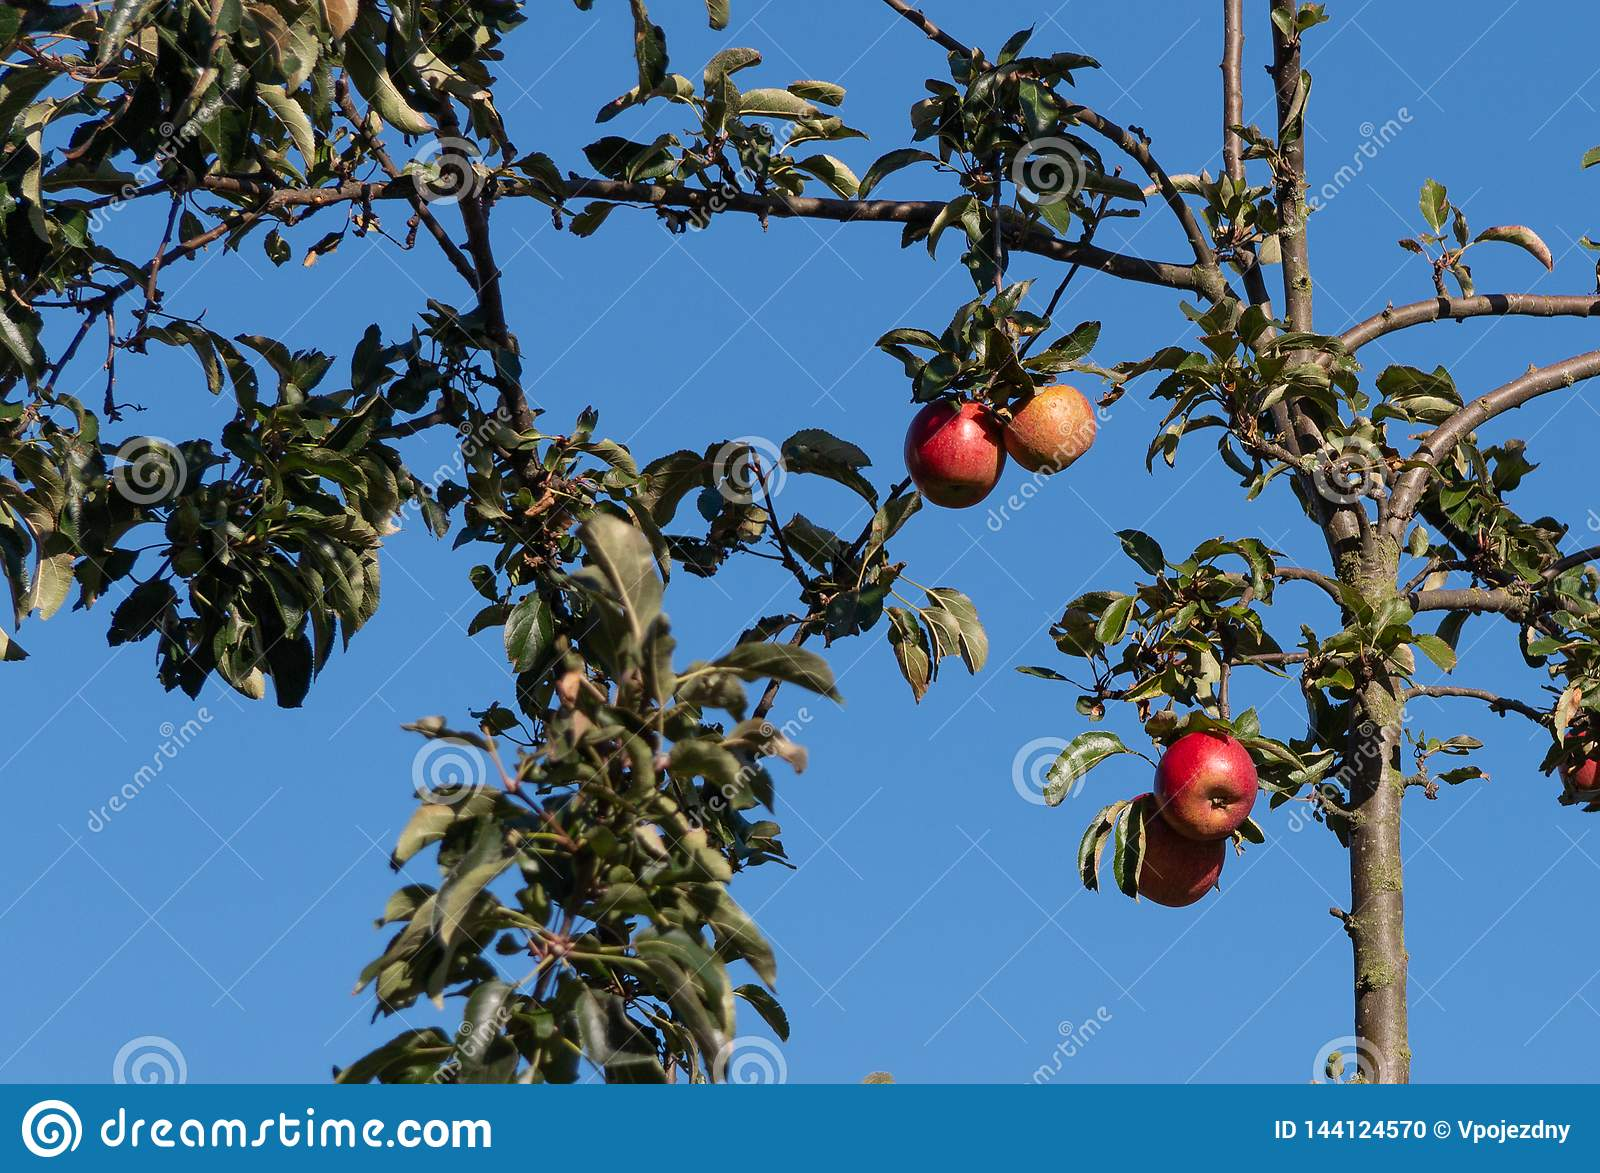 Apples on a tree in a garden